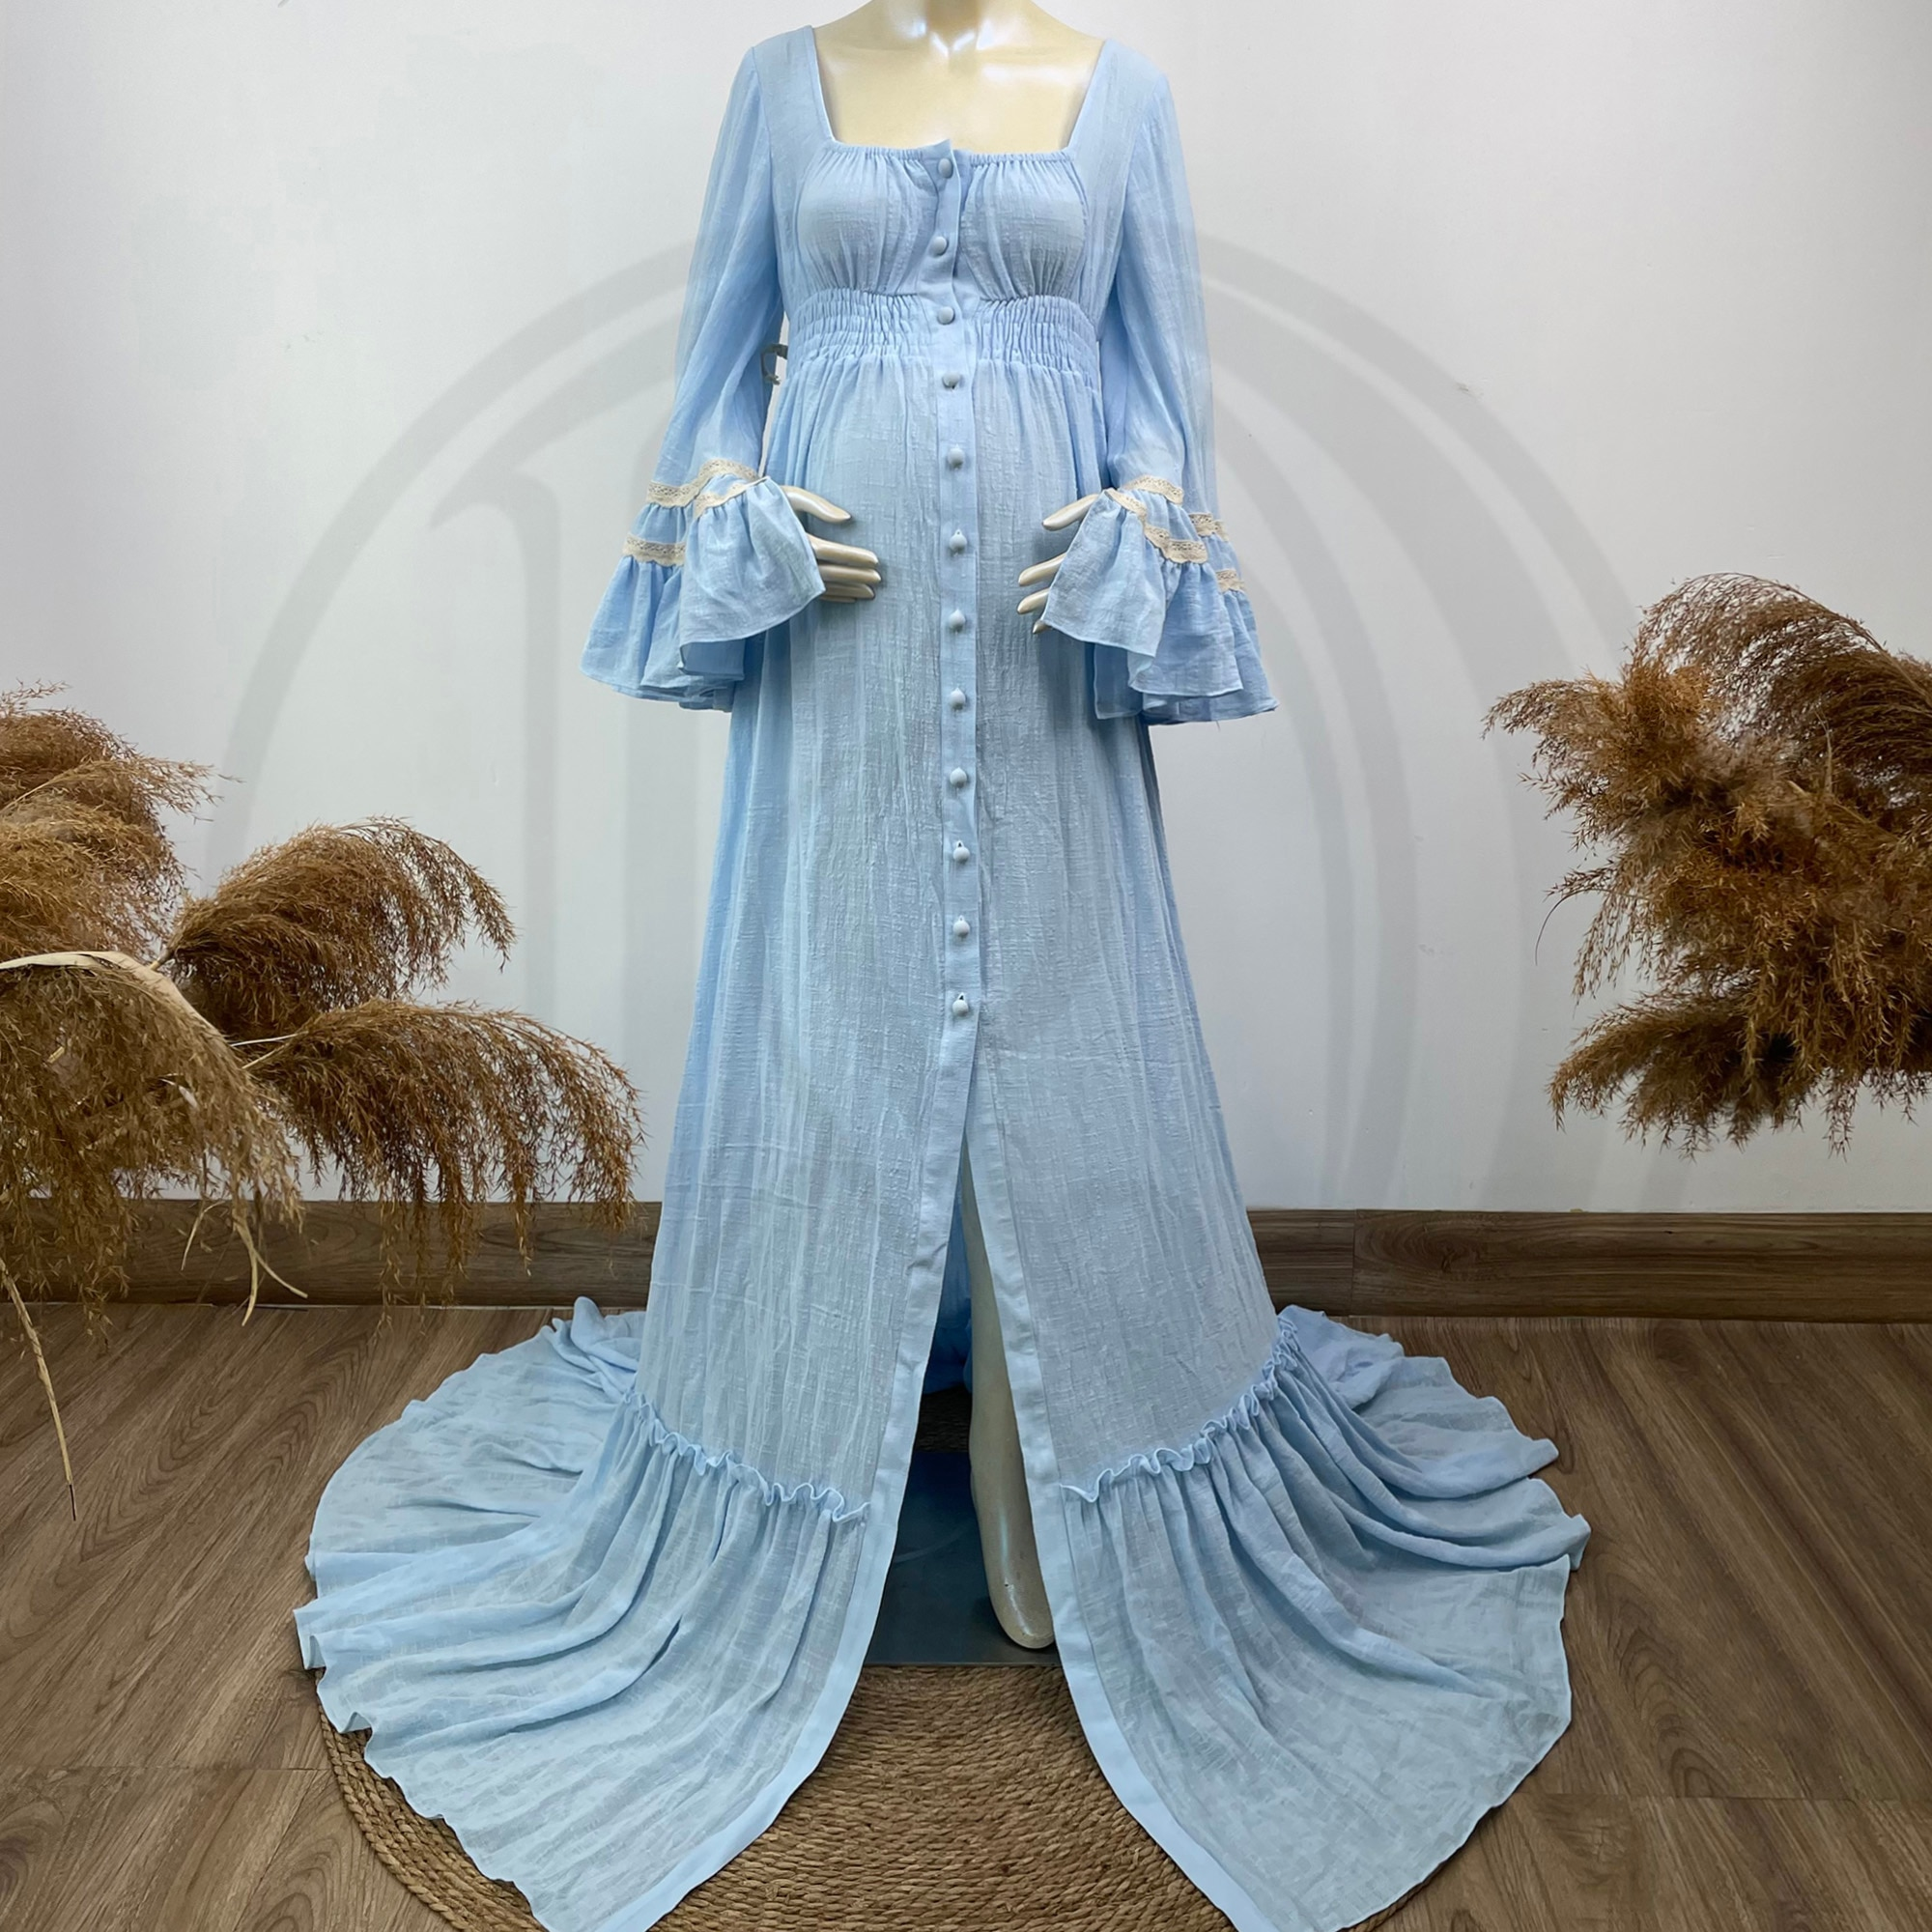 Retro Photo Shoot Prop Cotton Kaftan Full Sleeves Robe Maternity Dress Evening Party Costume for Women Photography Accessories